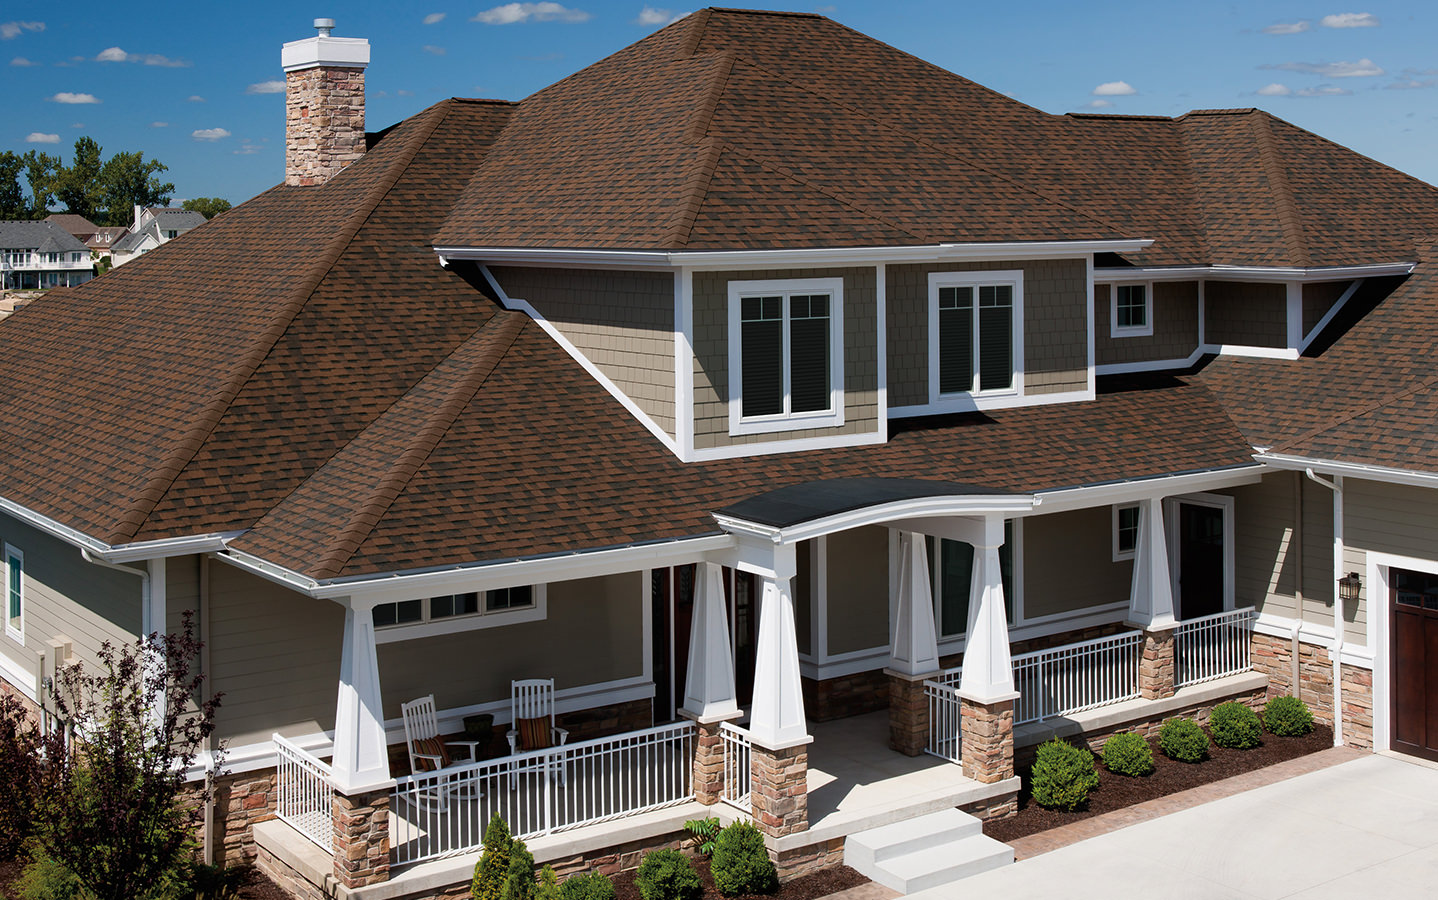 Top 5 reasons you might want to consider a new shingled roof this Spring.